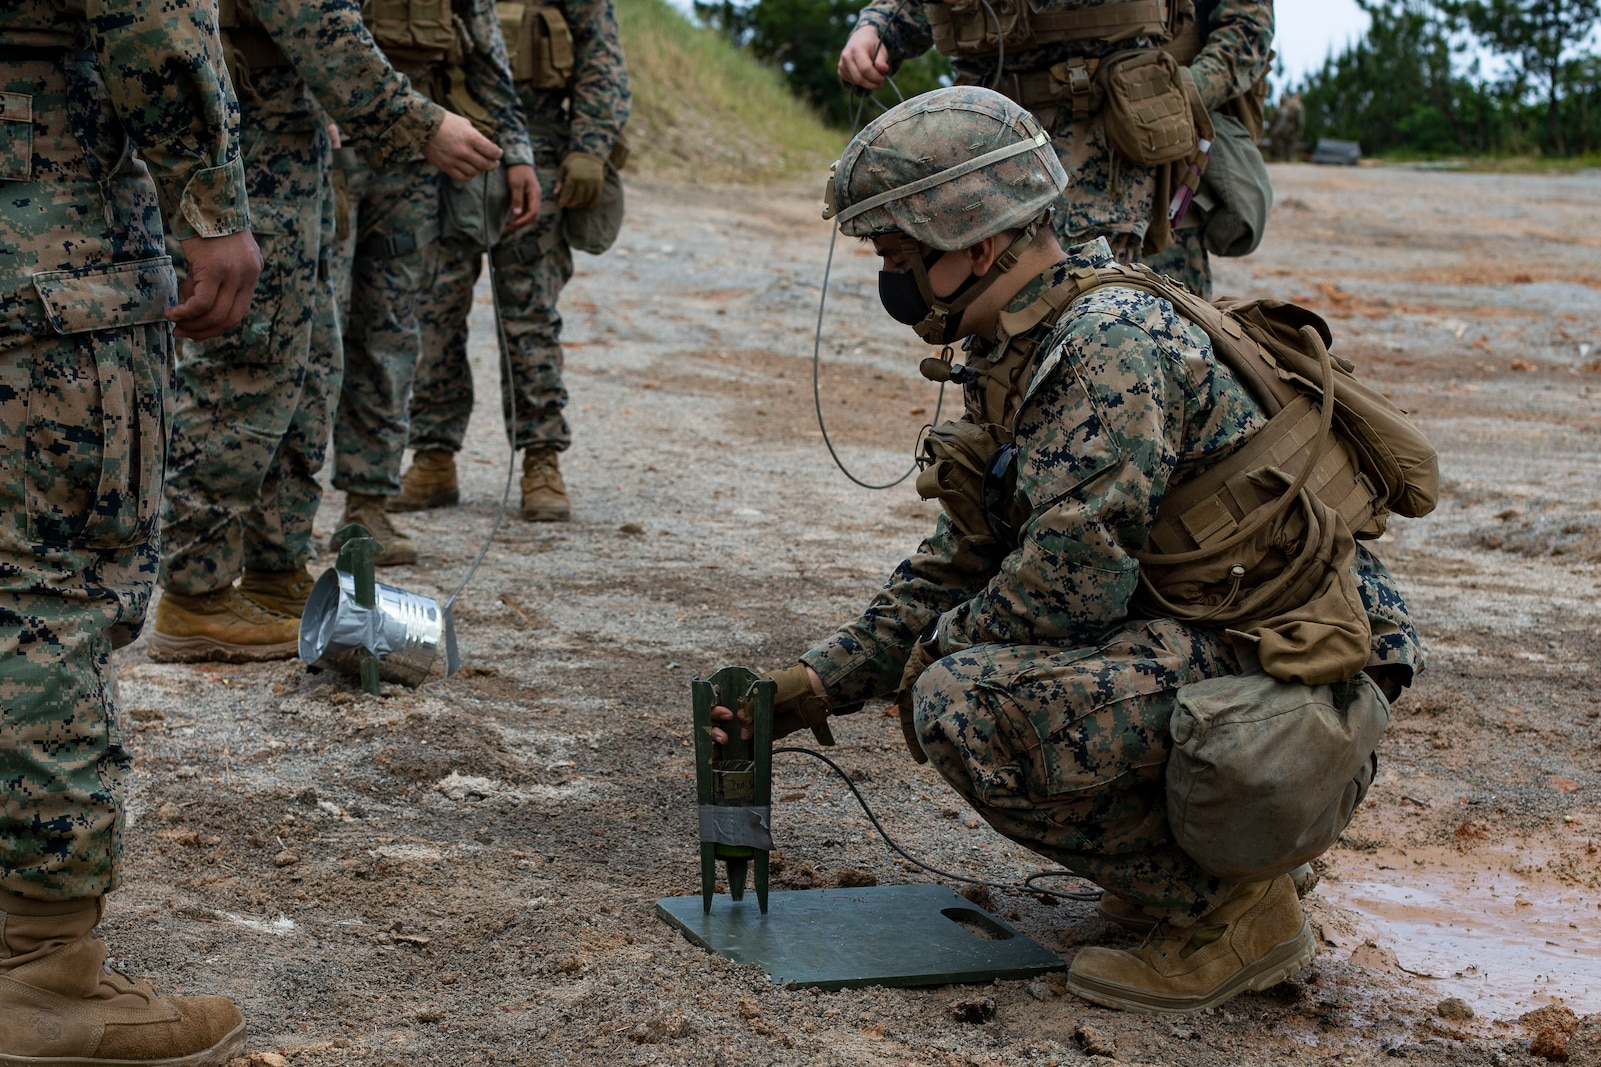 A U.S. Marine kneels while setting up an expedient shape charge as a group of Marines stand facing him, observing